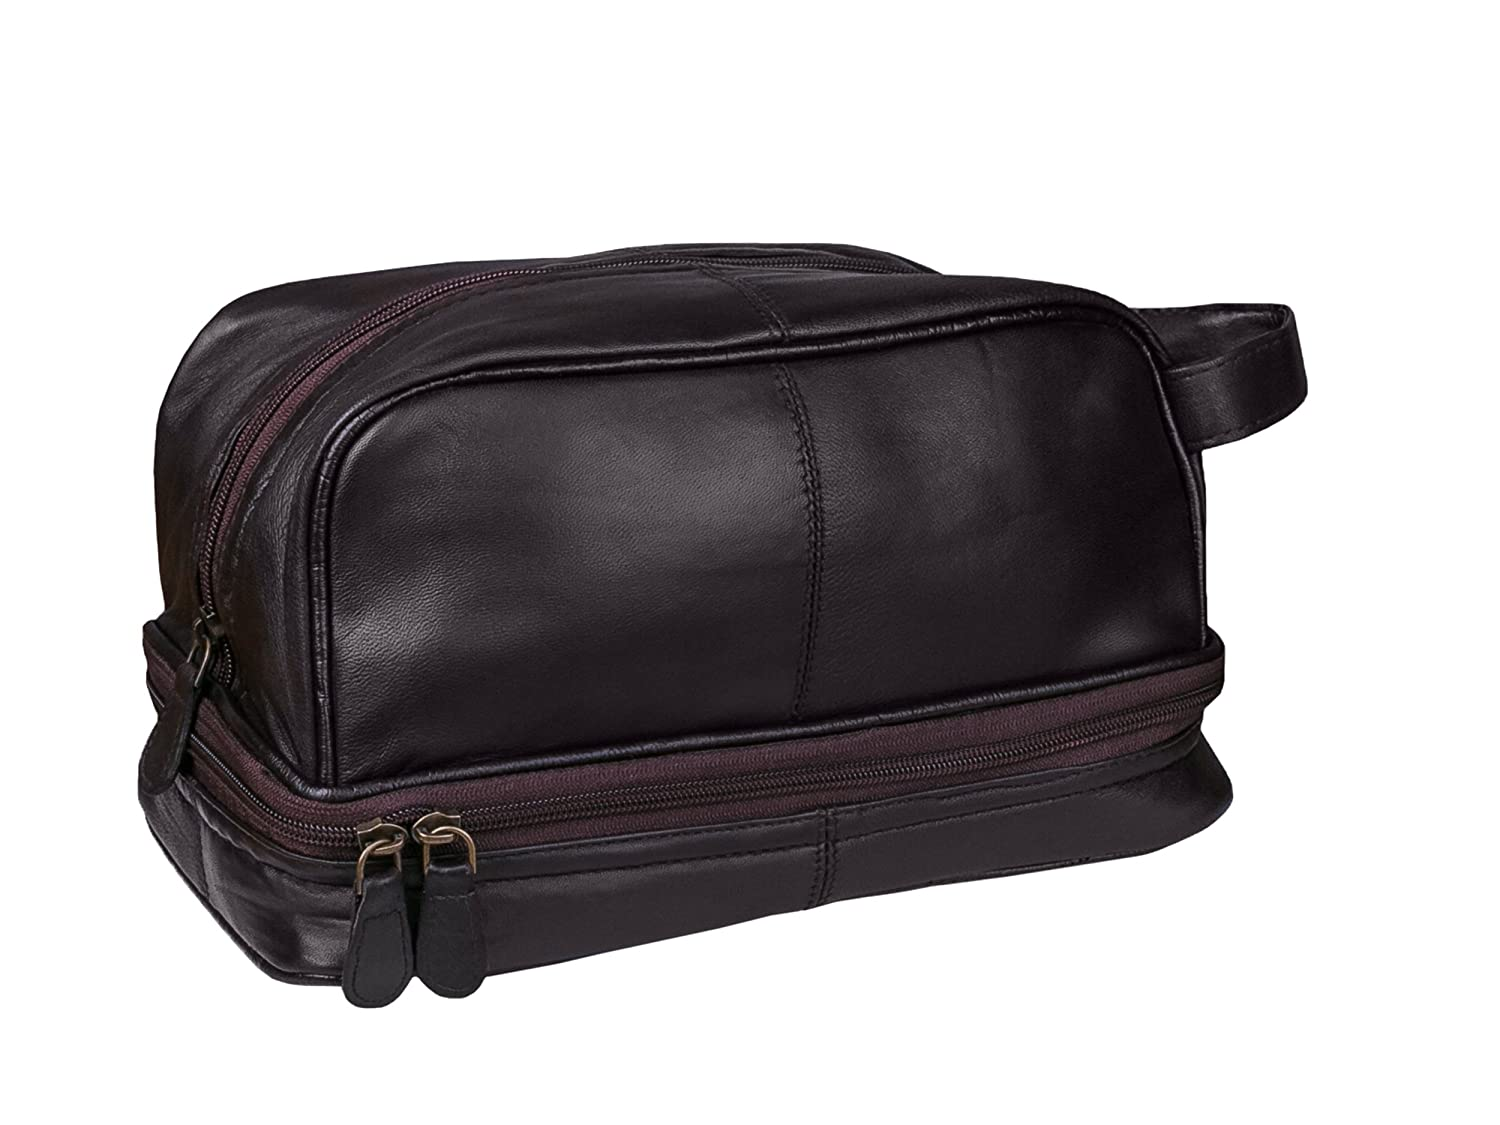 Popular Amazon.com : Dwellbee Classic Leather Toiletry Bag and Dopp Kit  IY56